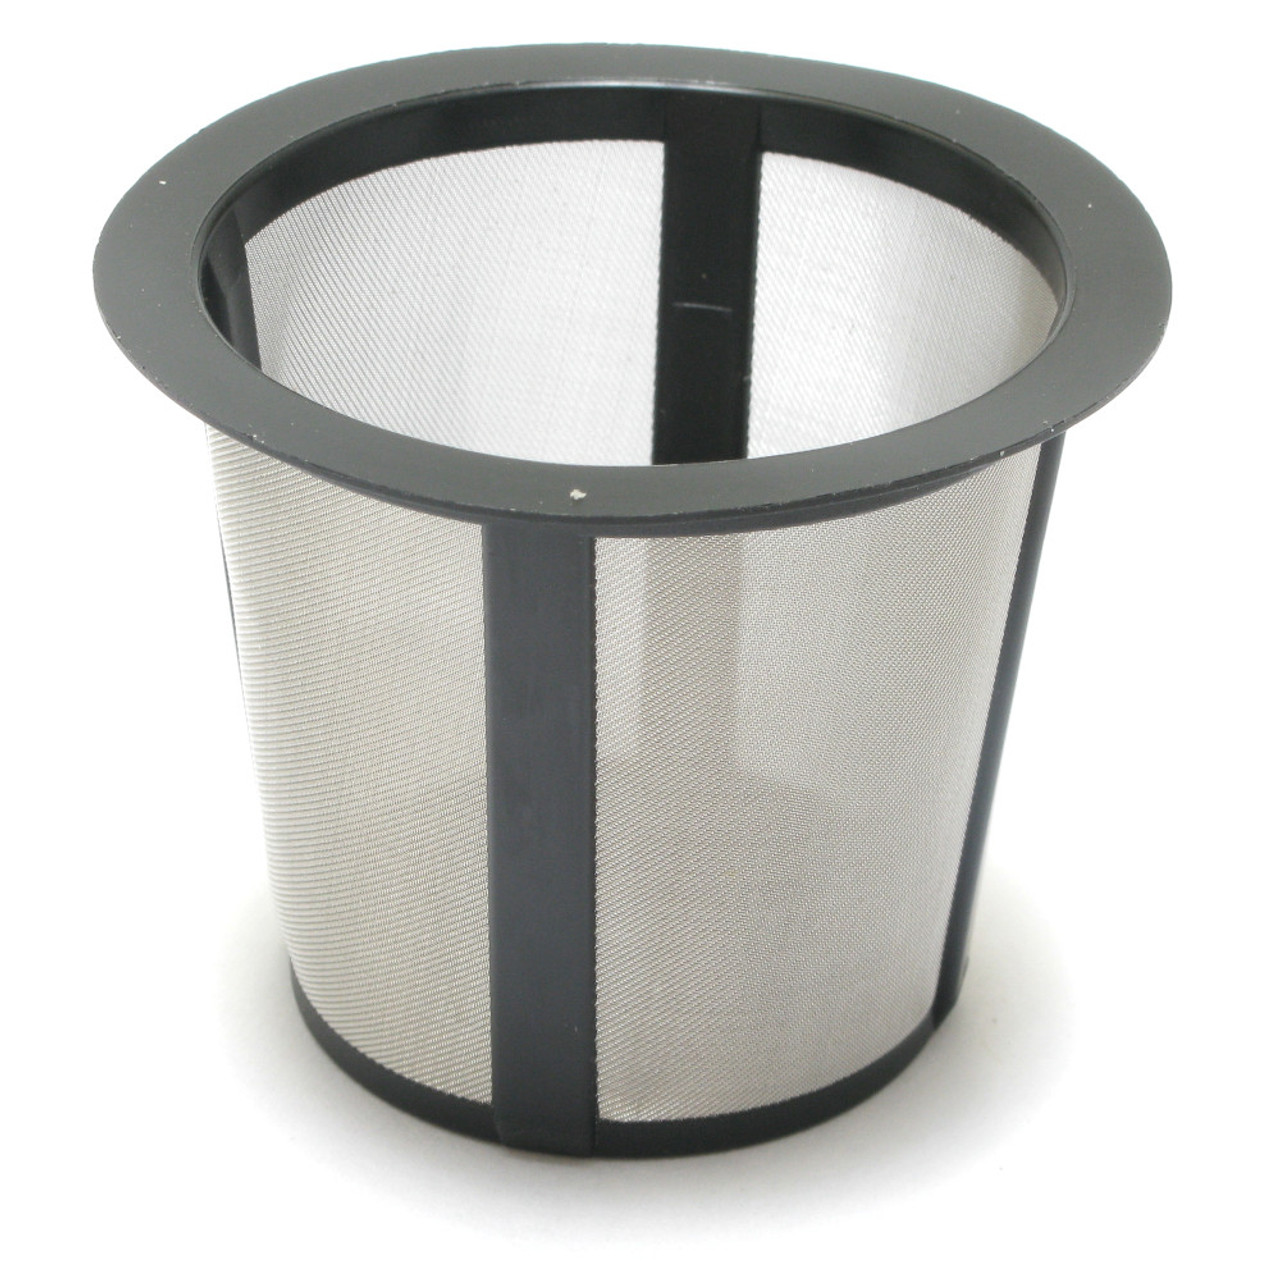 My K Cup Single Serving Coffee Maker Filter